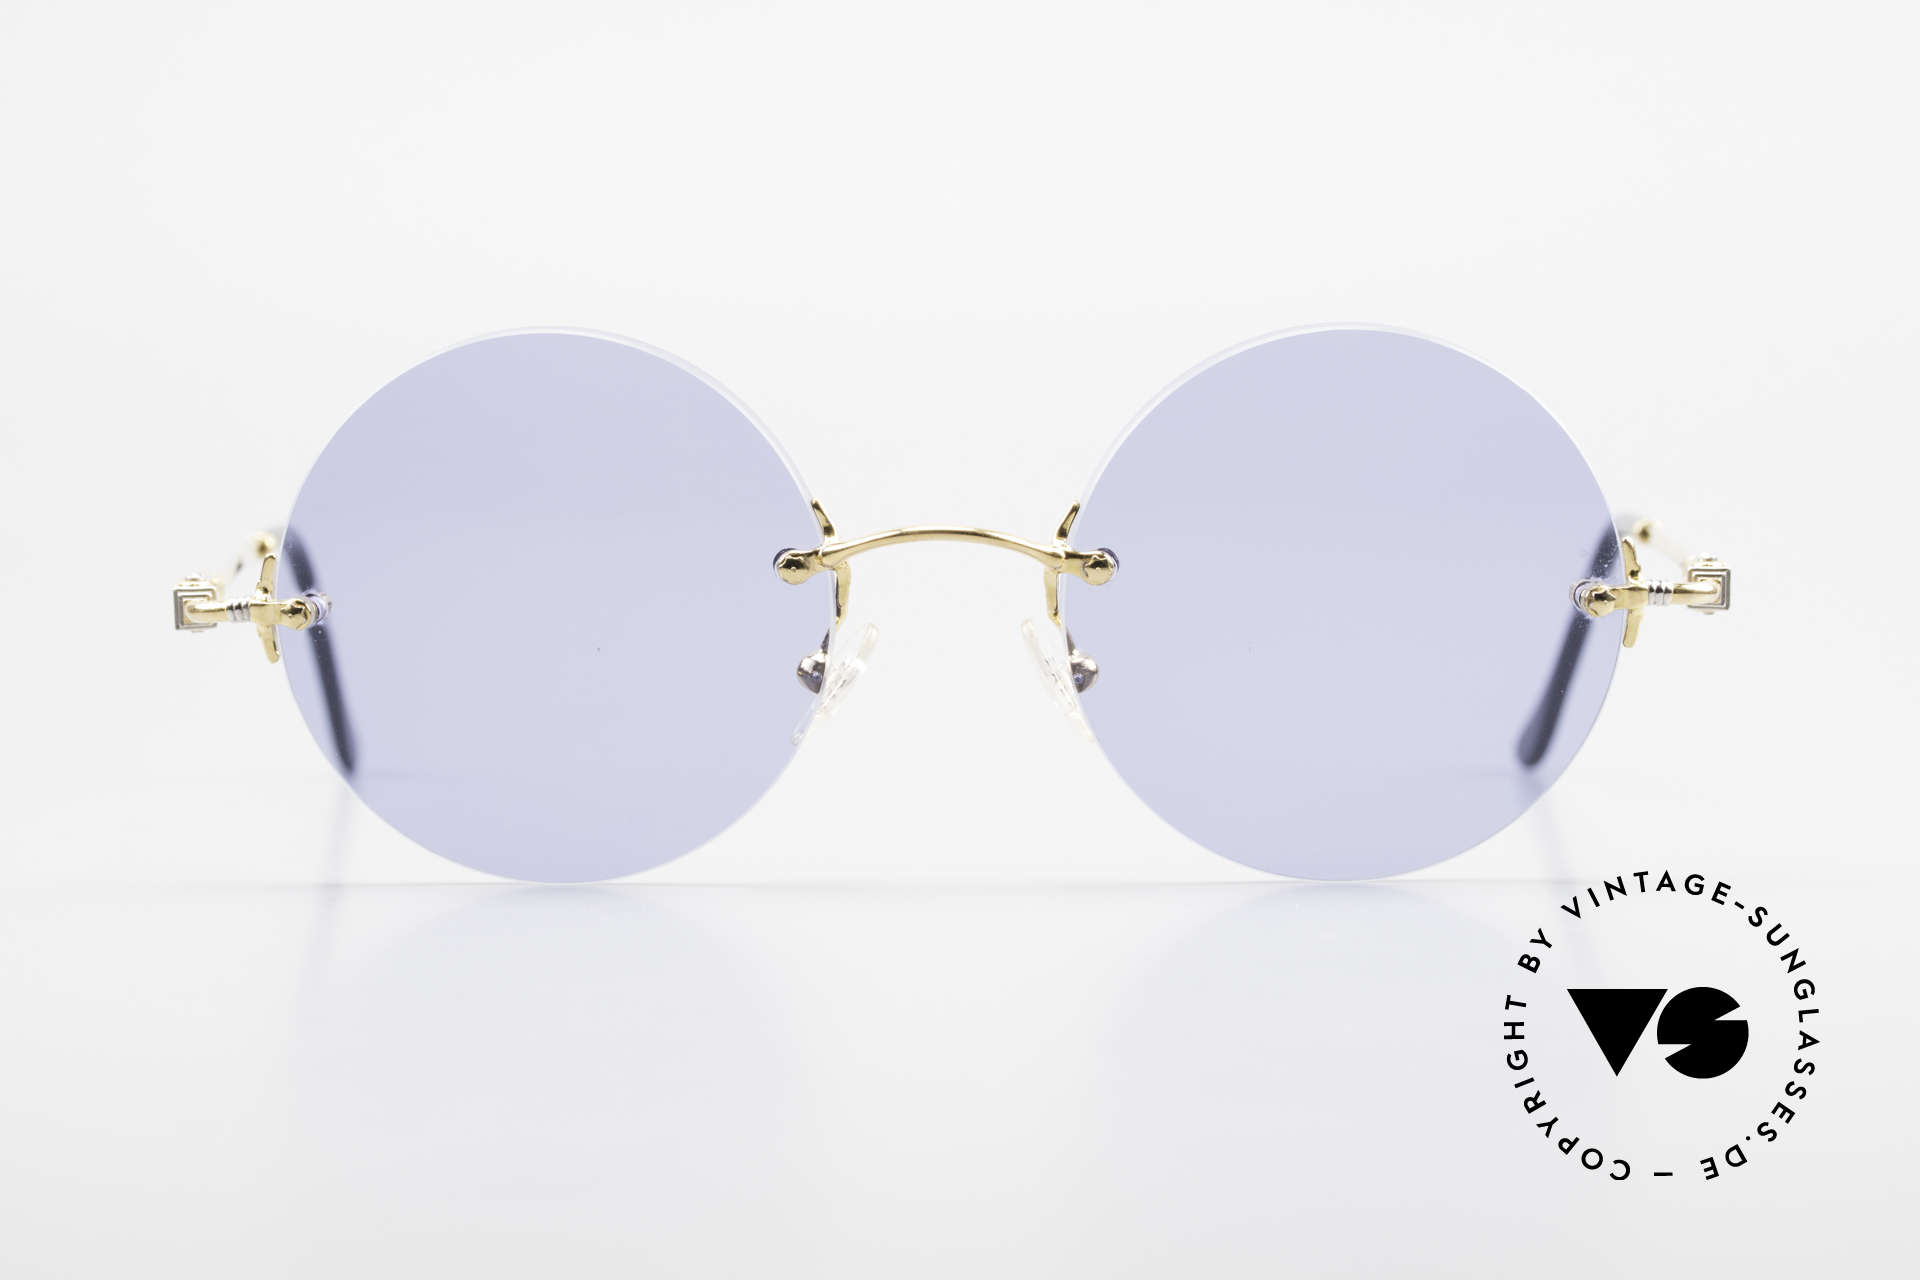 Fred Fidji Rimless Round Luxury Shades, marine design (distinctive Fred) in high-end quality!, Made for Men